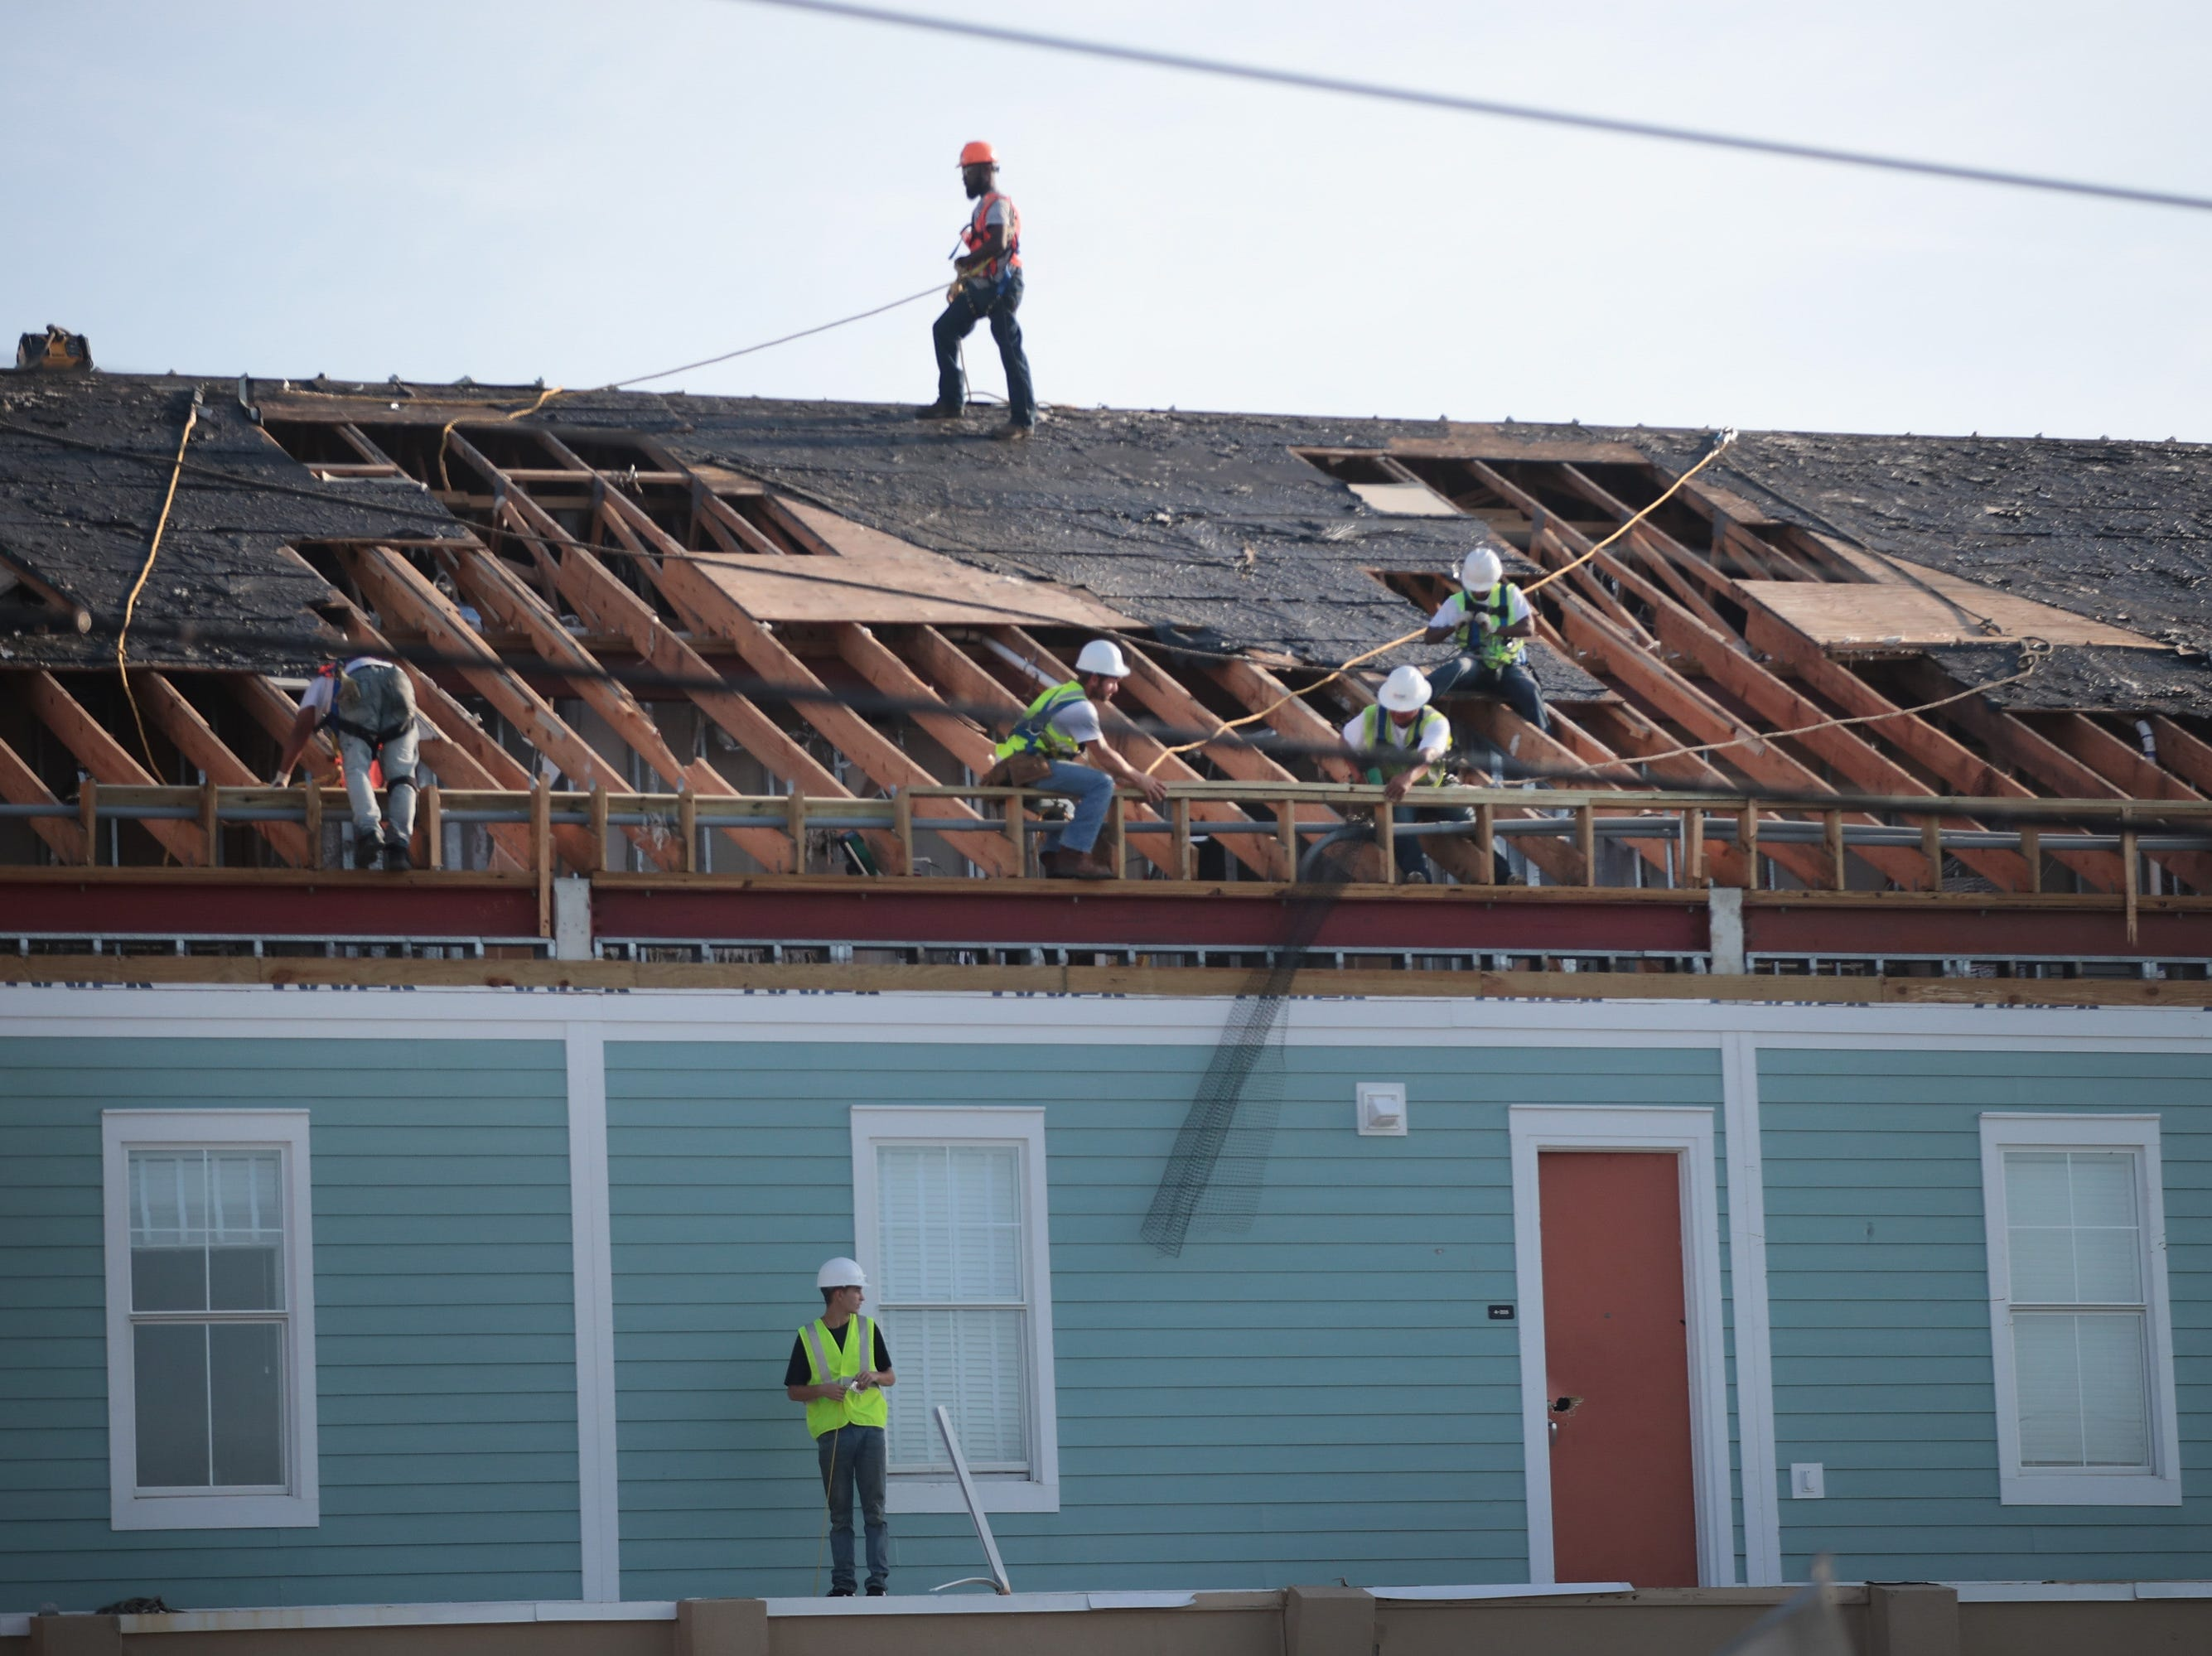 Contract workers begin repairing damaged buildings and removing debris following Hurricane Michael on Oct. 19, 2018 in Mexico Beach, Fla.